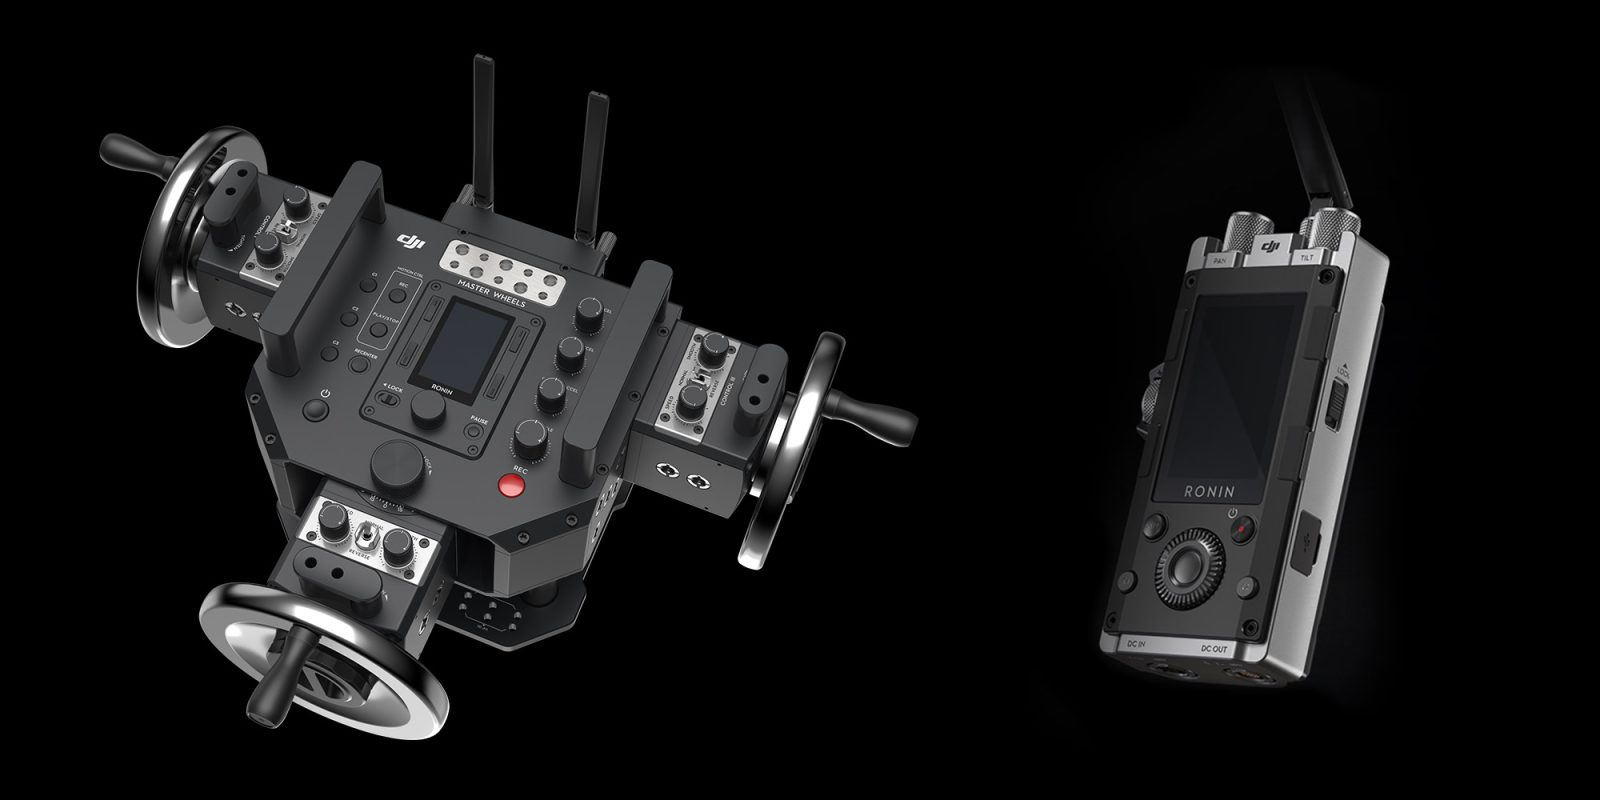 DJI Introduces The Master Wheels And Force Pro At NAB 2018 No News Of New Drones